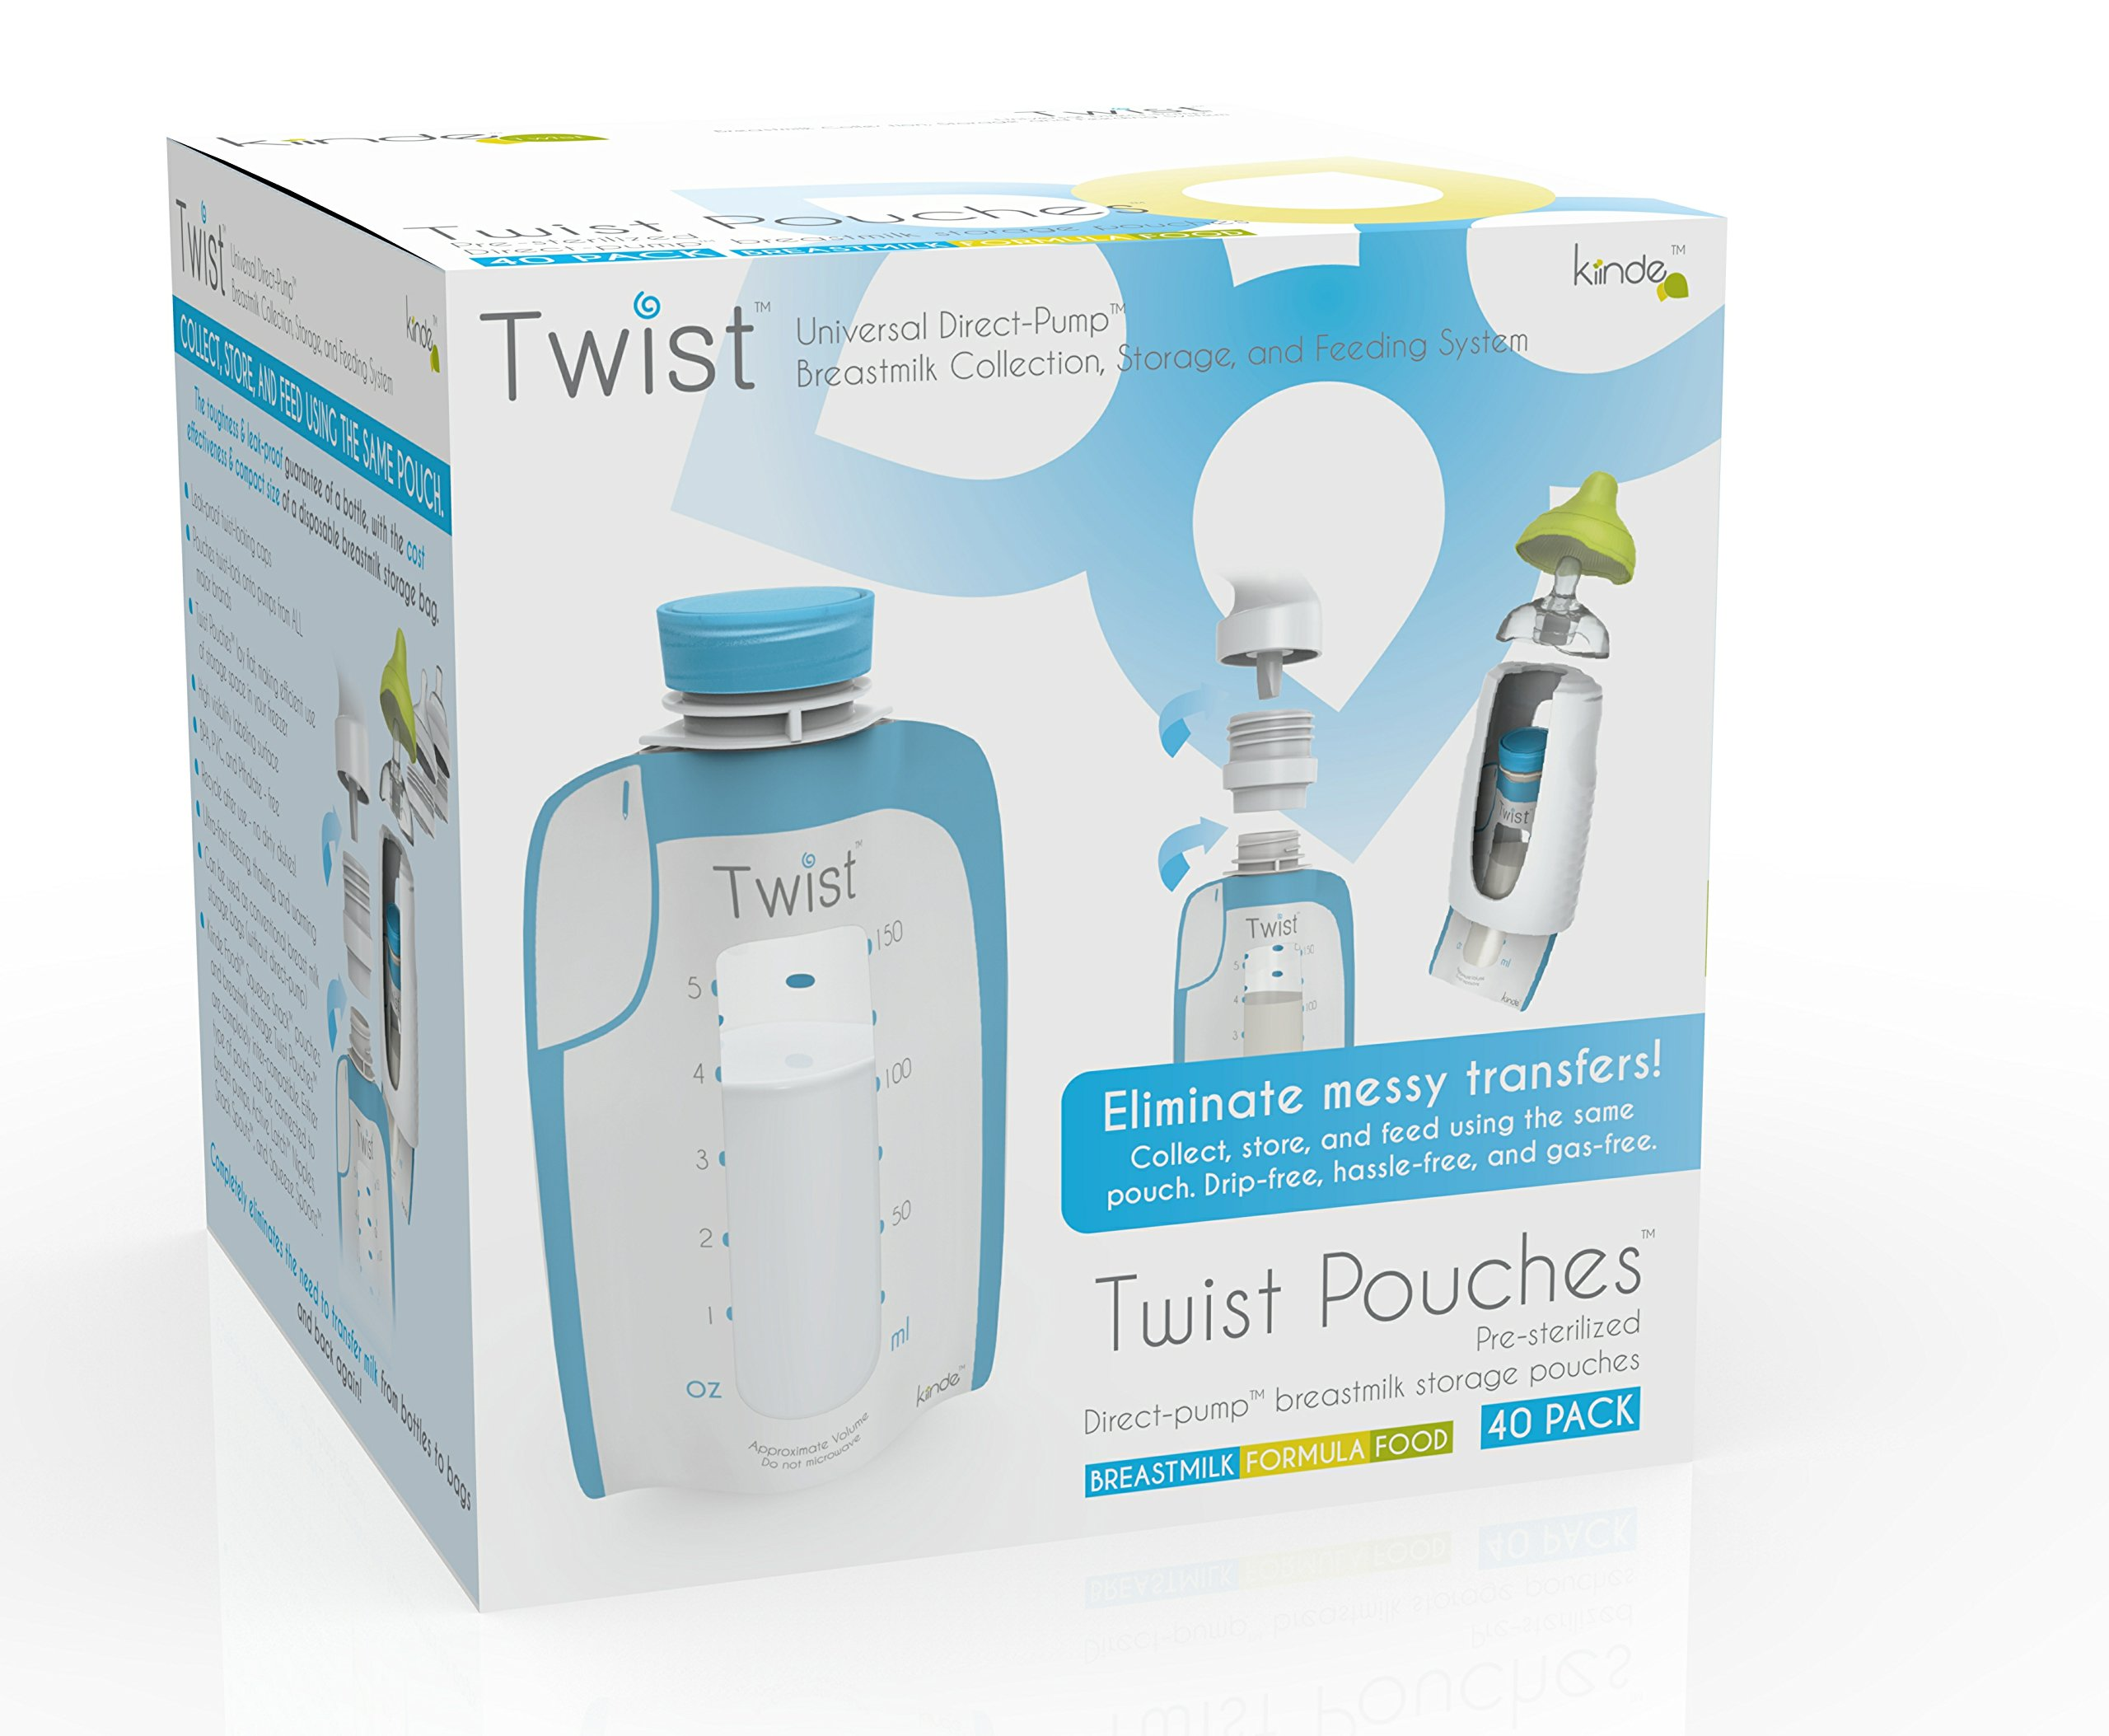 Kiinde Twist Pouch Breast Milk Storage Bags for Pumping, Freezing, and Feeding by Kiinde (Image #5)